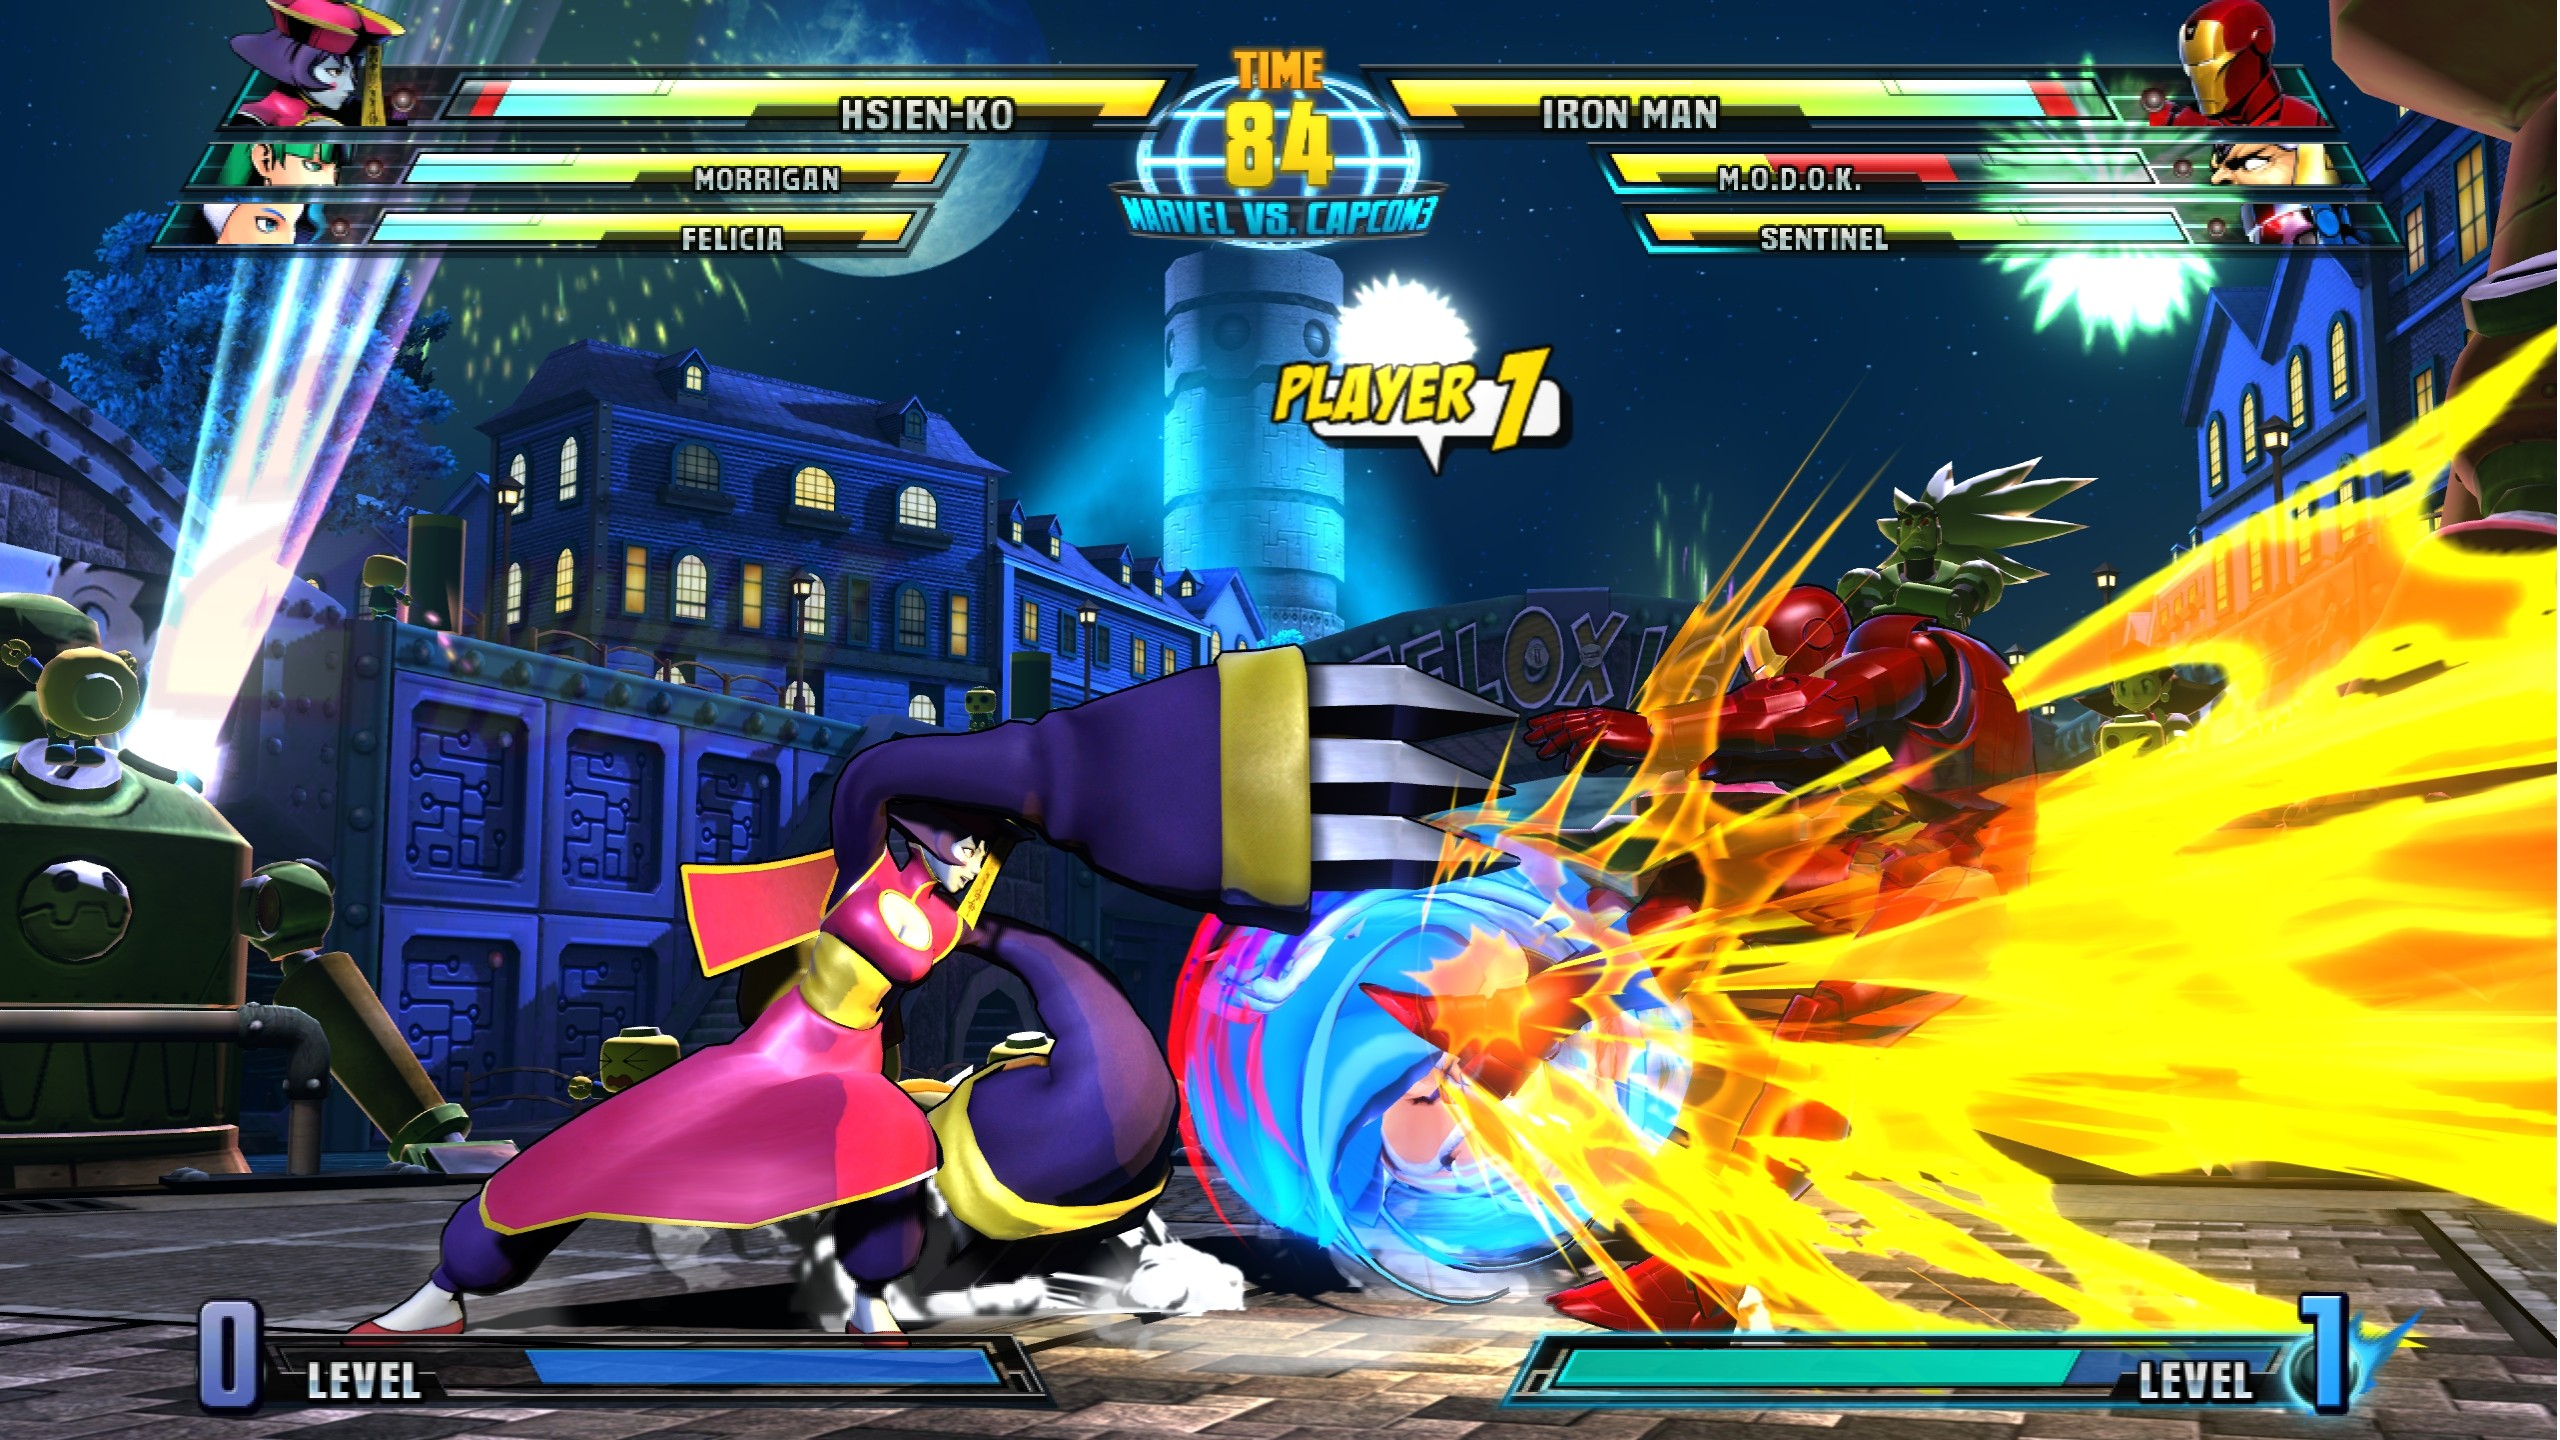 Marvel vs. Capcom 3: Fate of Two Worlds - Marvel vs. Capcom 3: Fate of Two Worlds 2K, Скриншот